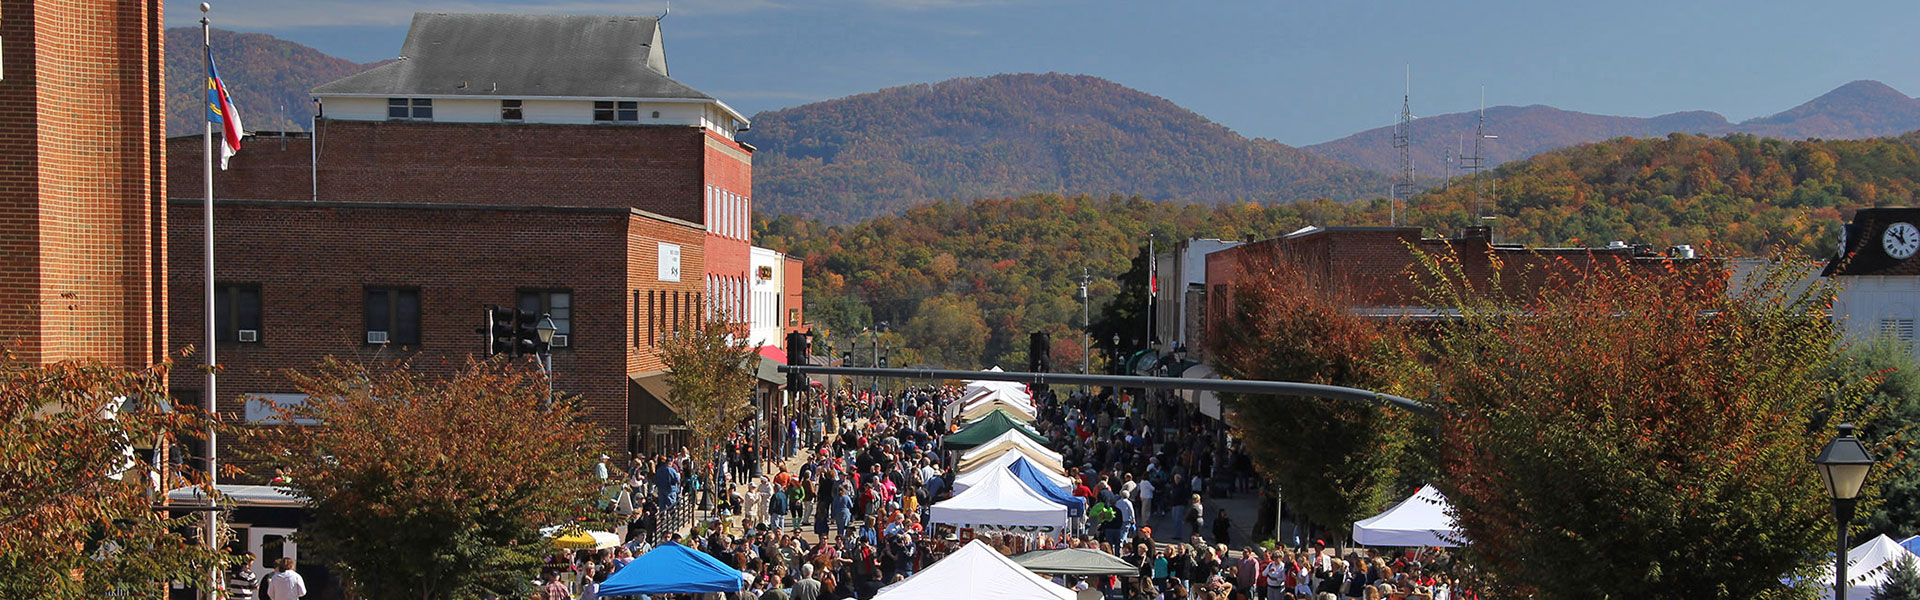 franklin nc events calendar